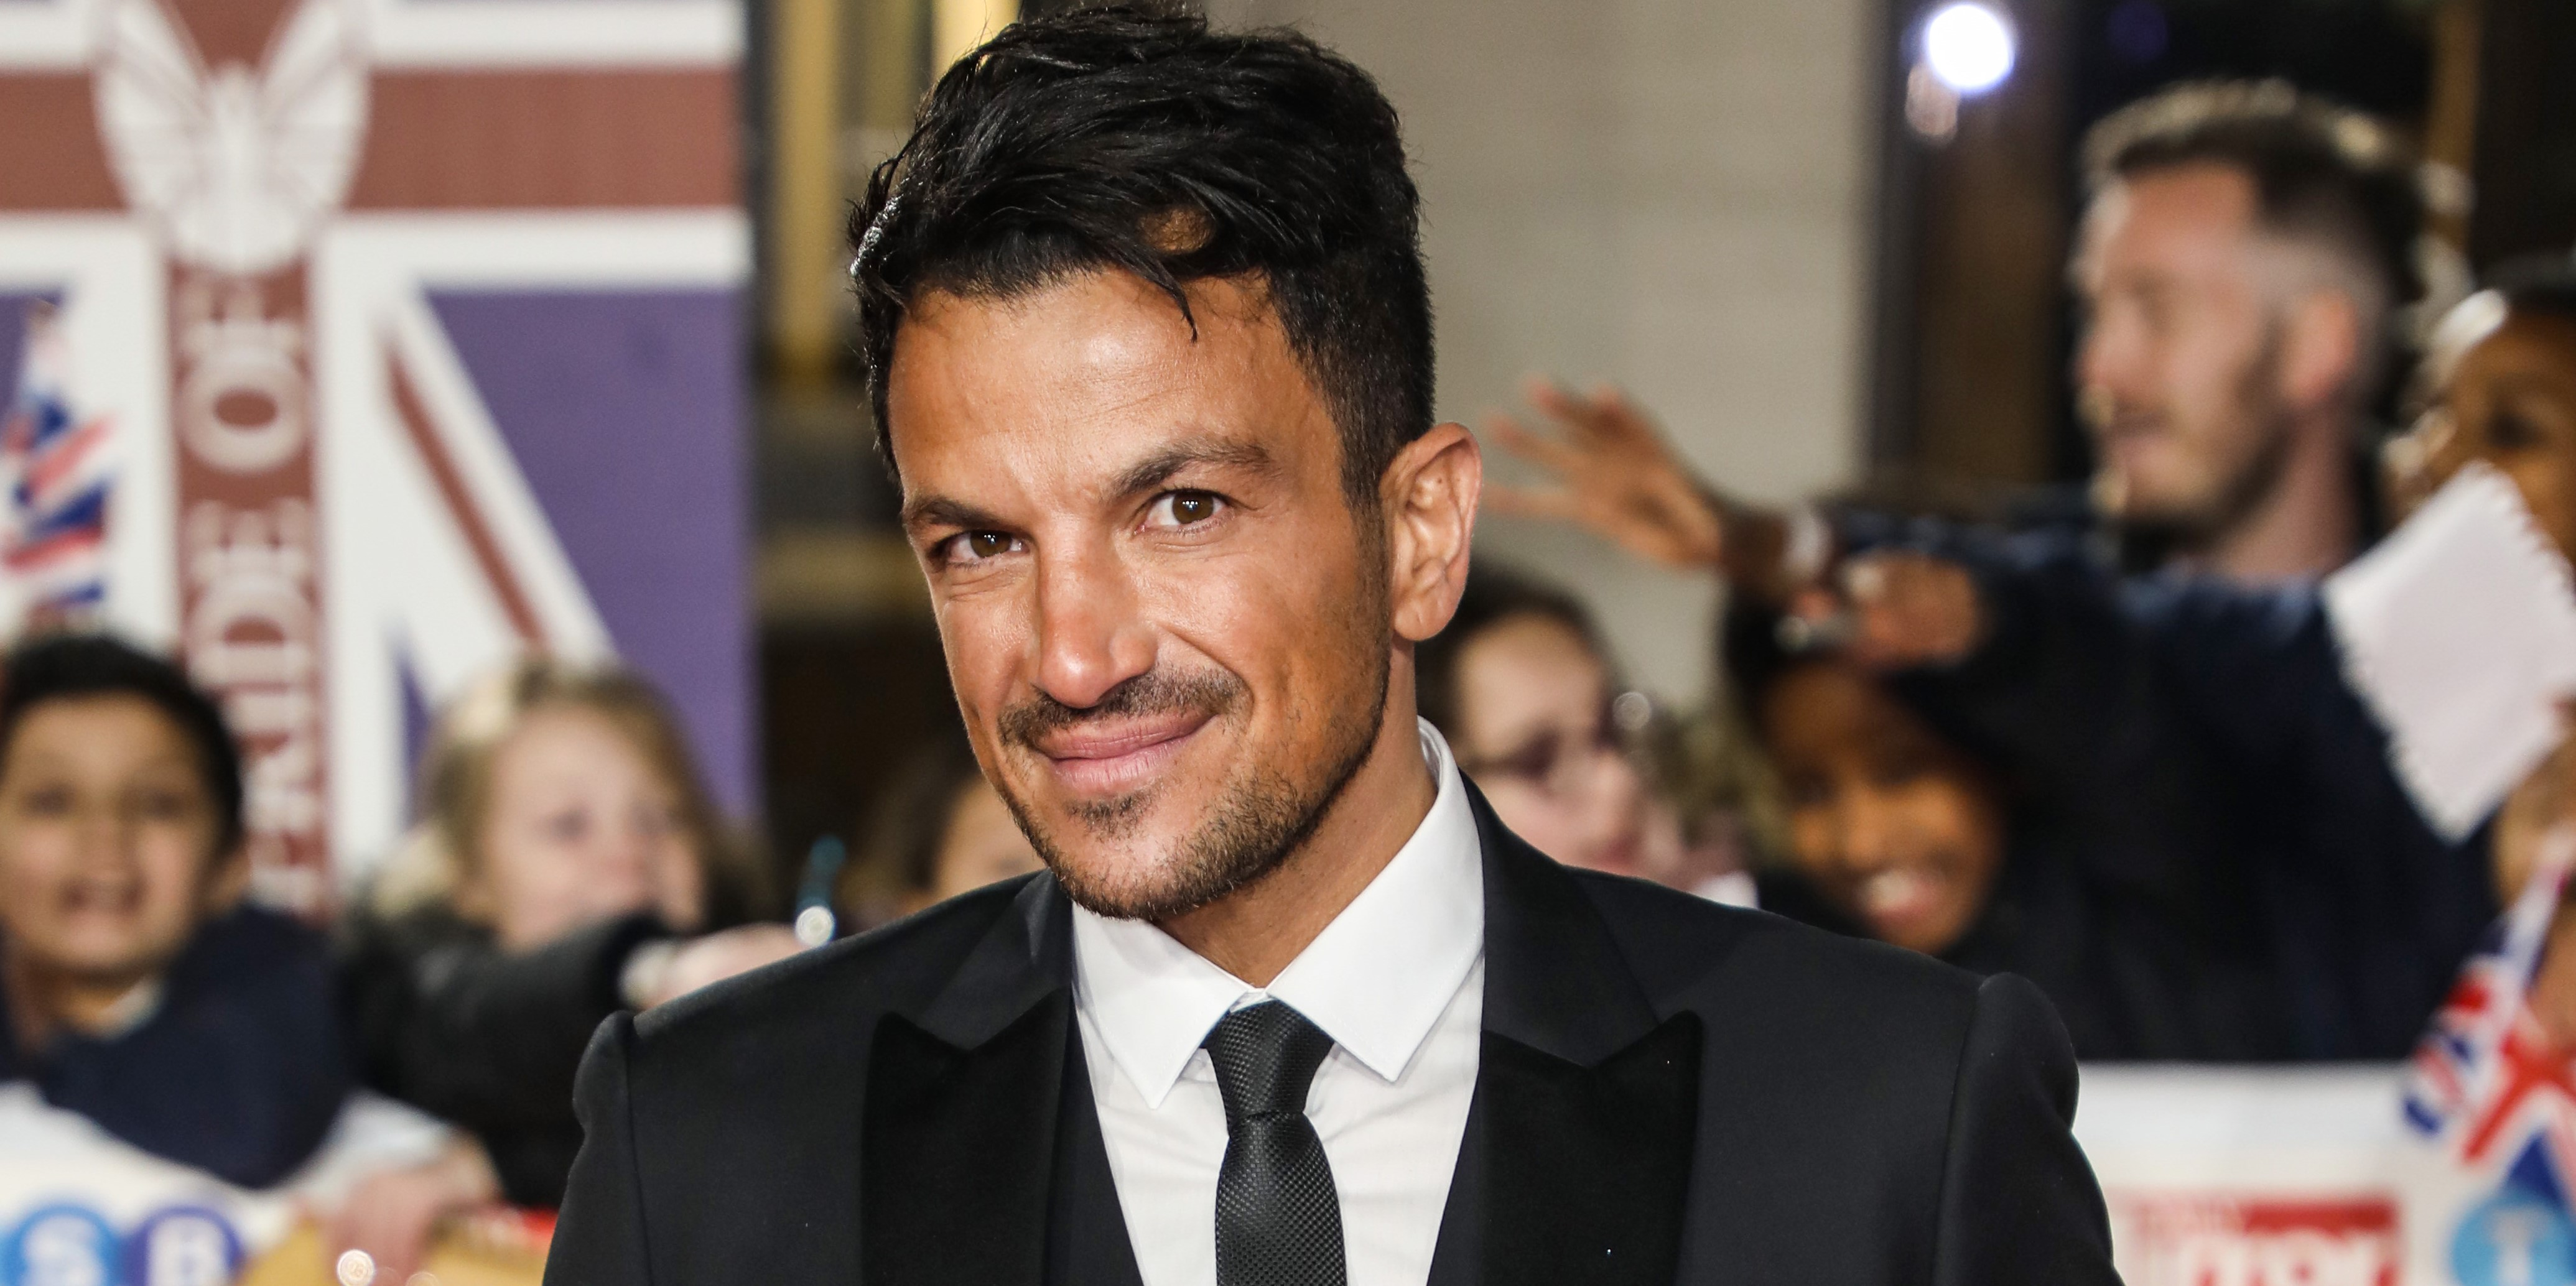 Peter Andre's daughter Princess shows off Australian heritage in new photo